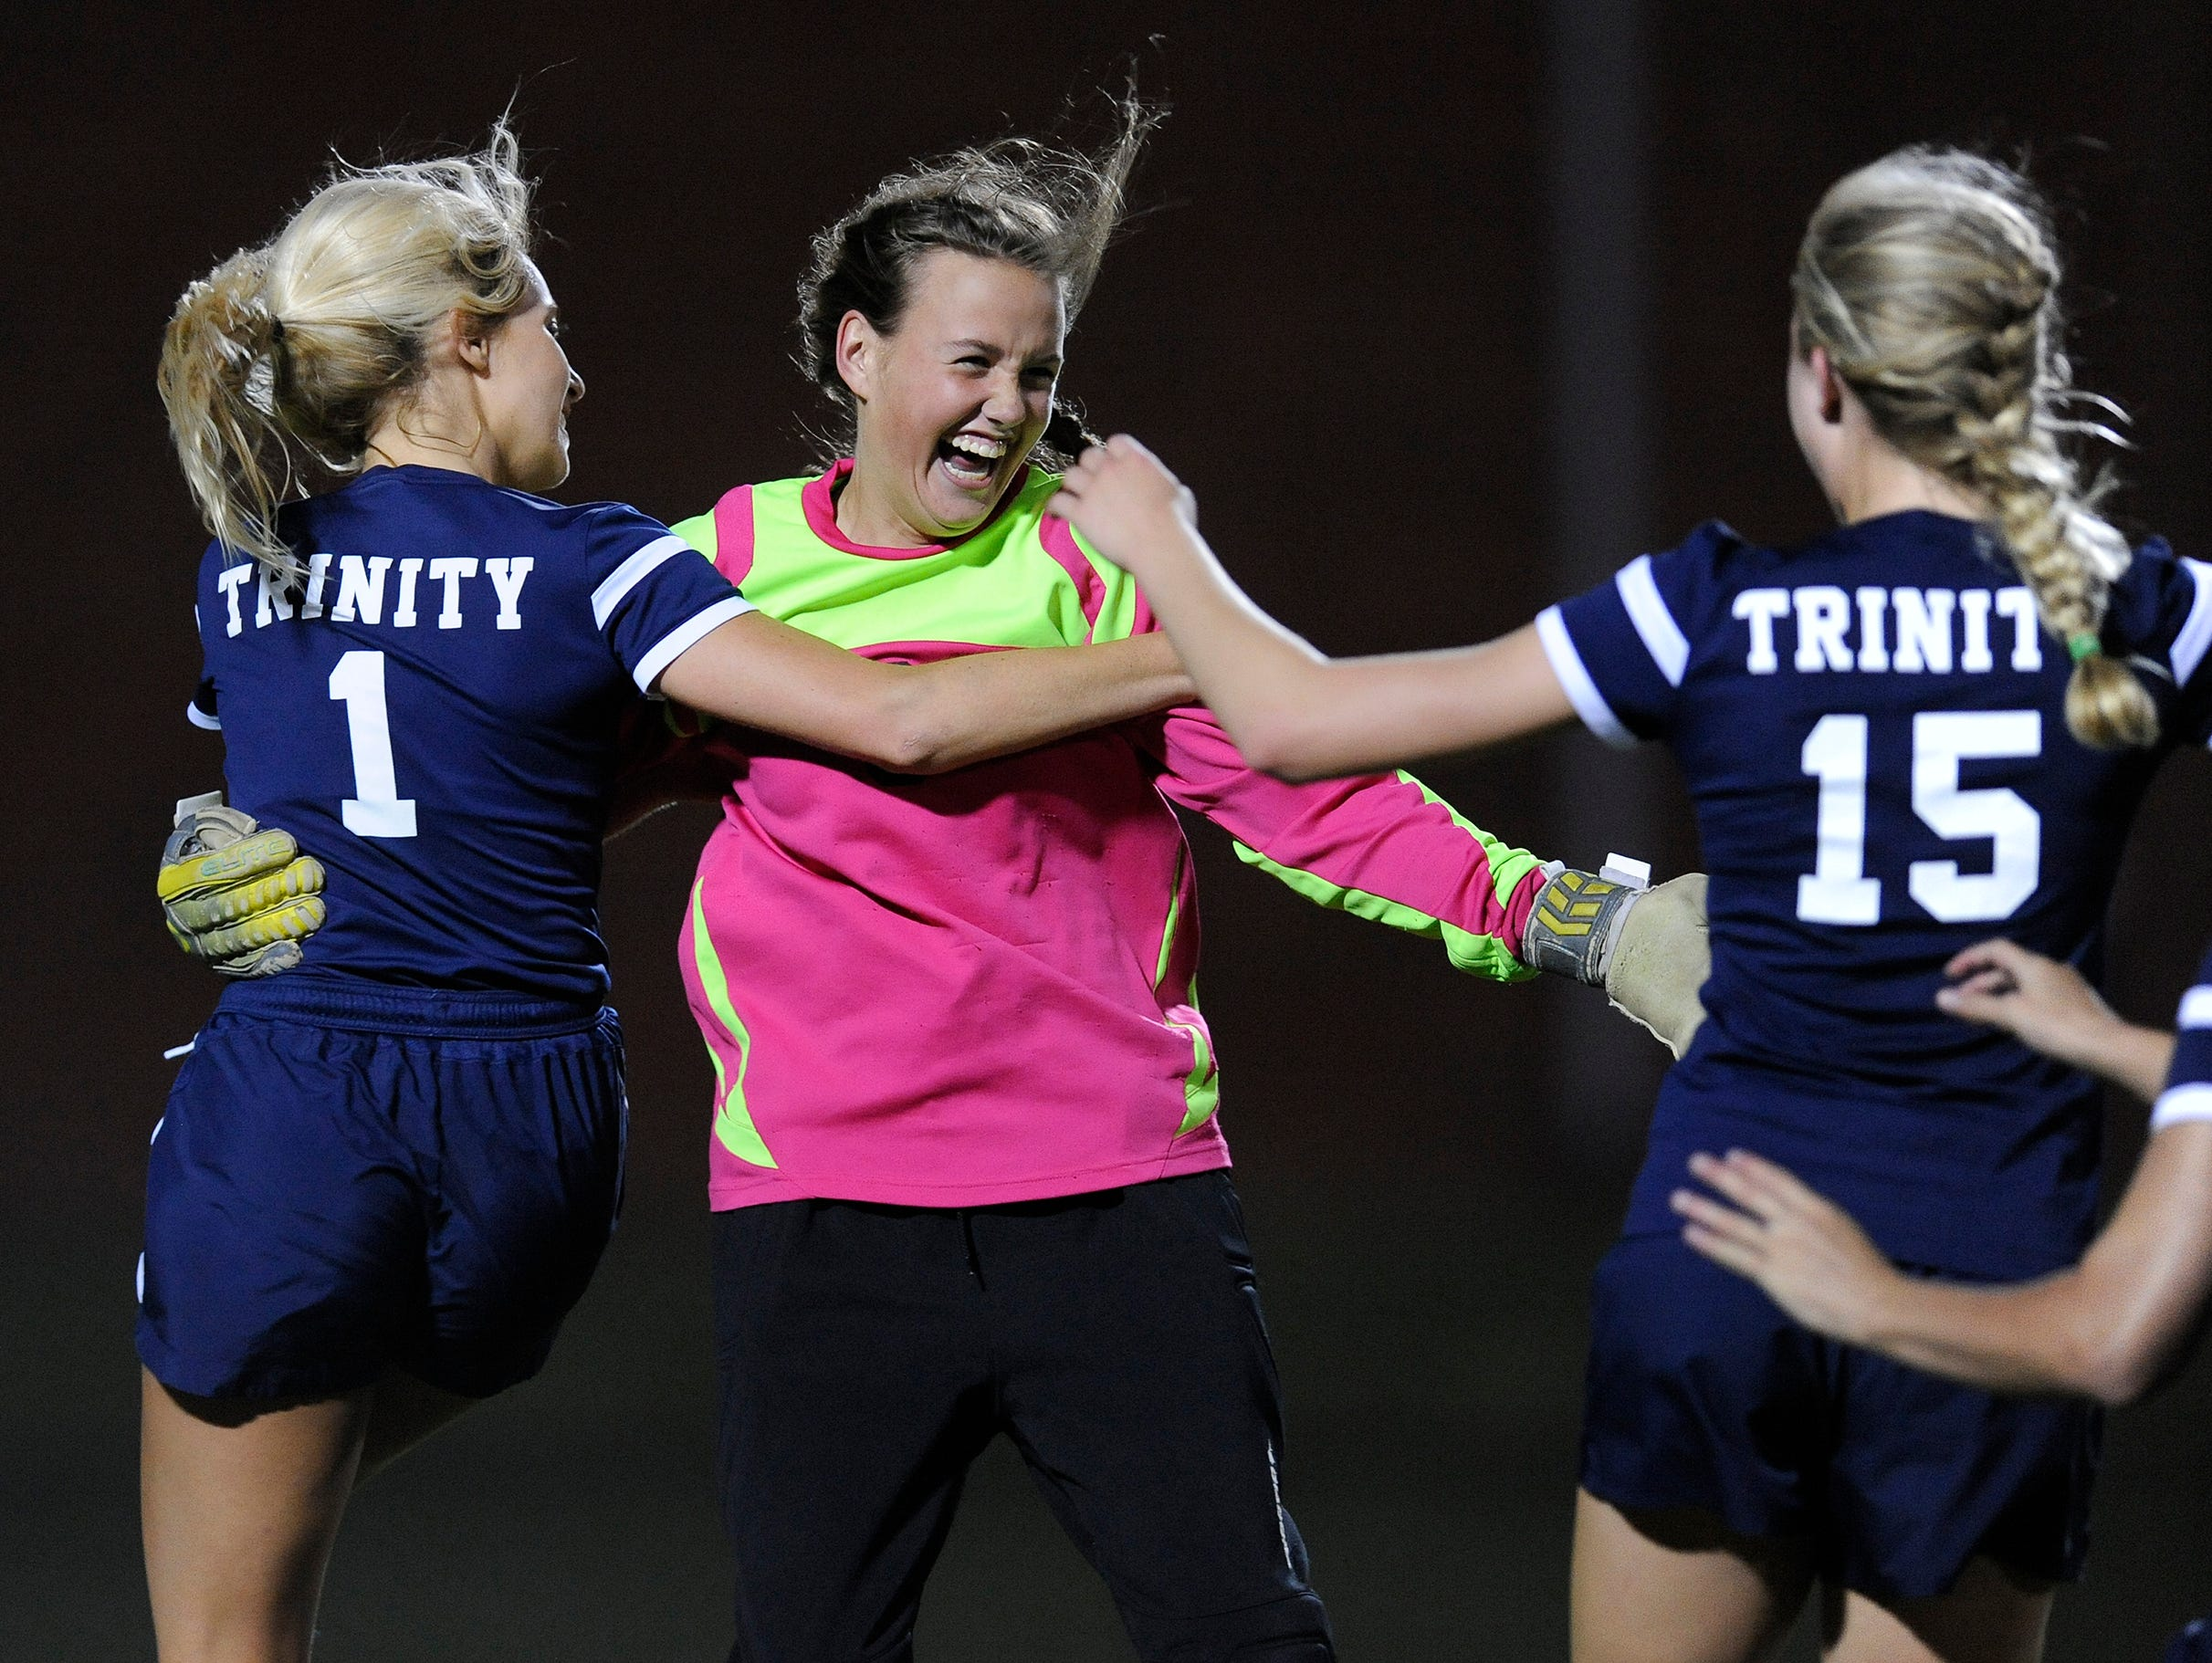 Trinity's Lanier Sanders (1), Joy Bishop and Mary Stuart Tipton (15) celebrate the win over St. James at the St. James campus in Montgomery, Ala., on Tuesday April 28, 2015.